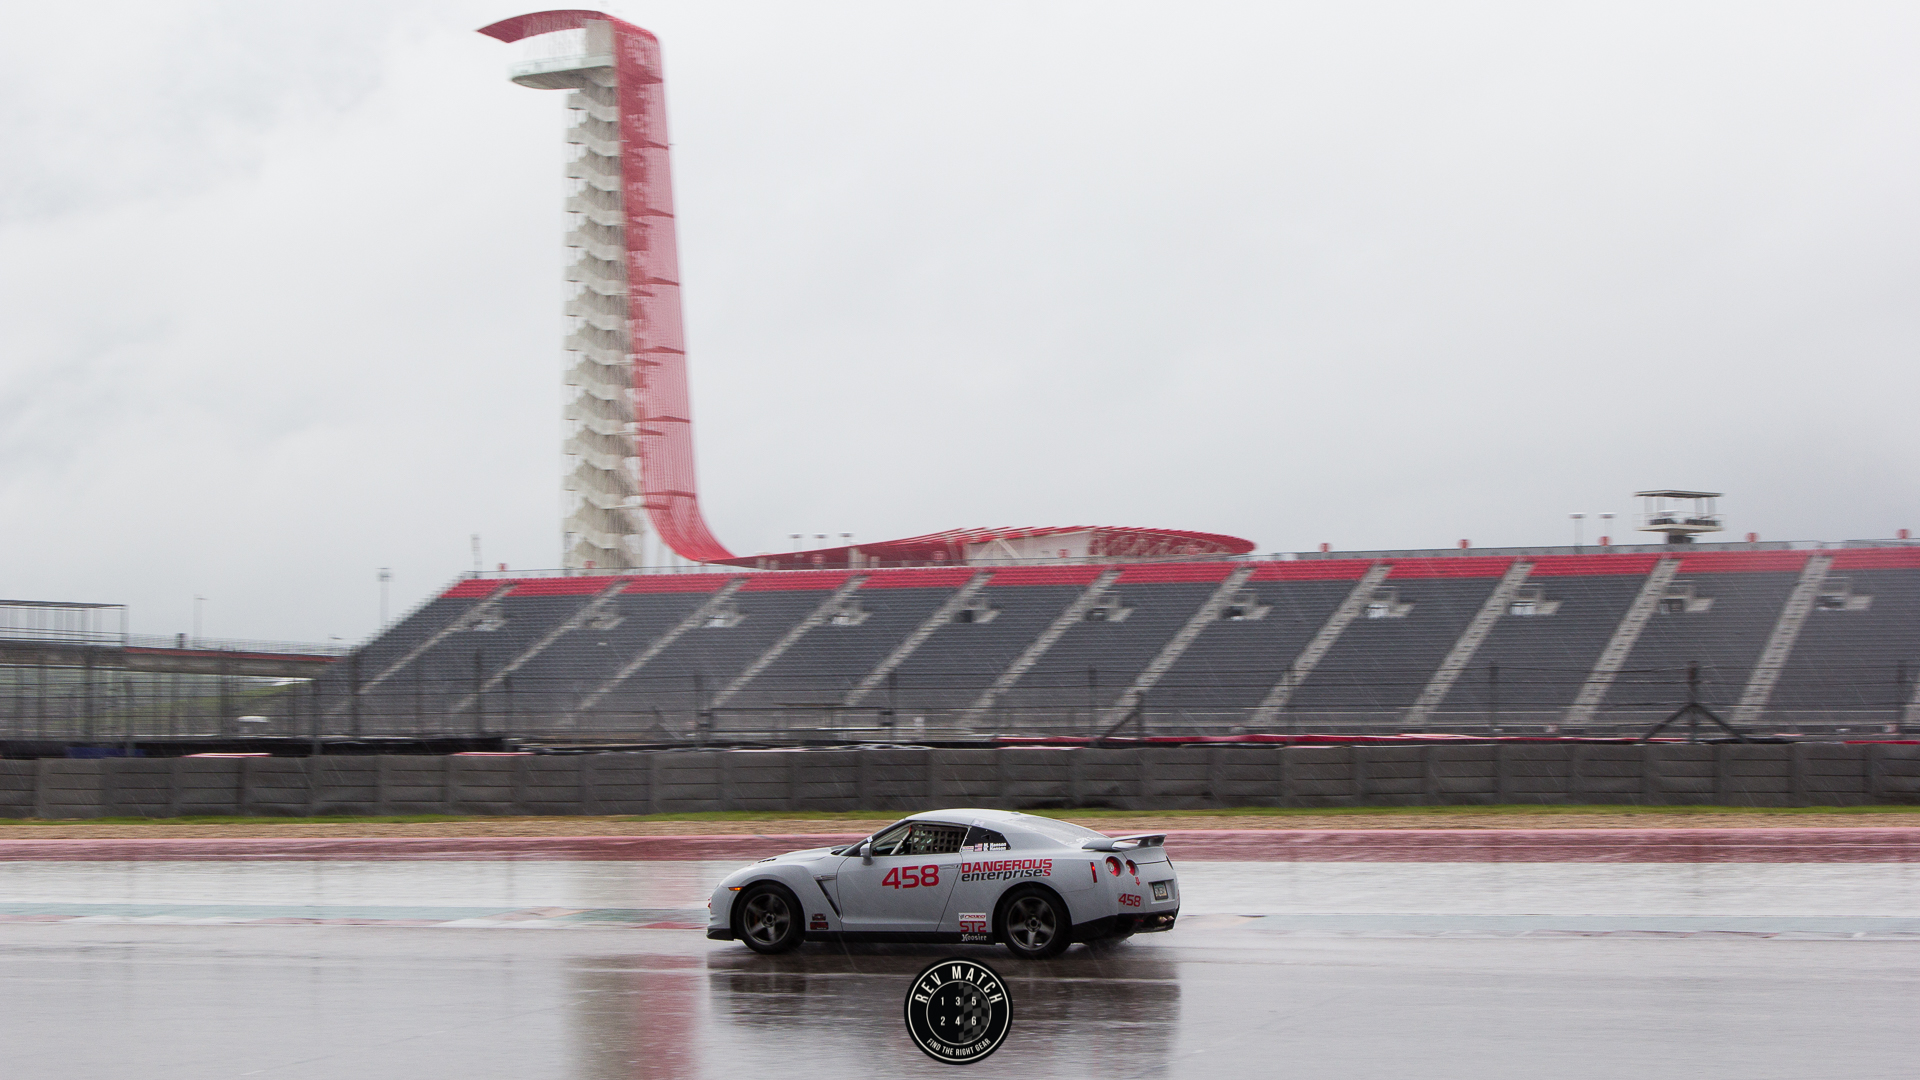 RMM x NASA at COTA 2018-197.jpg